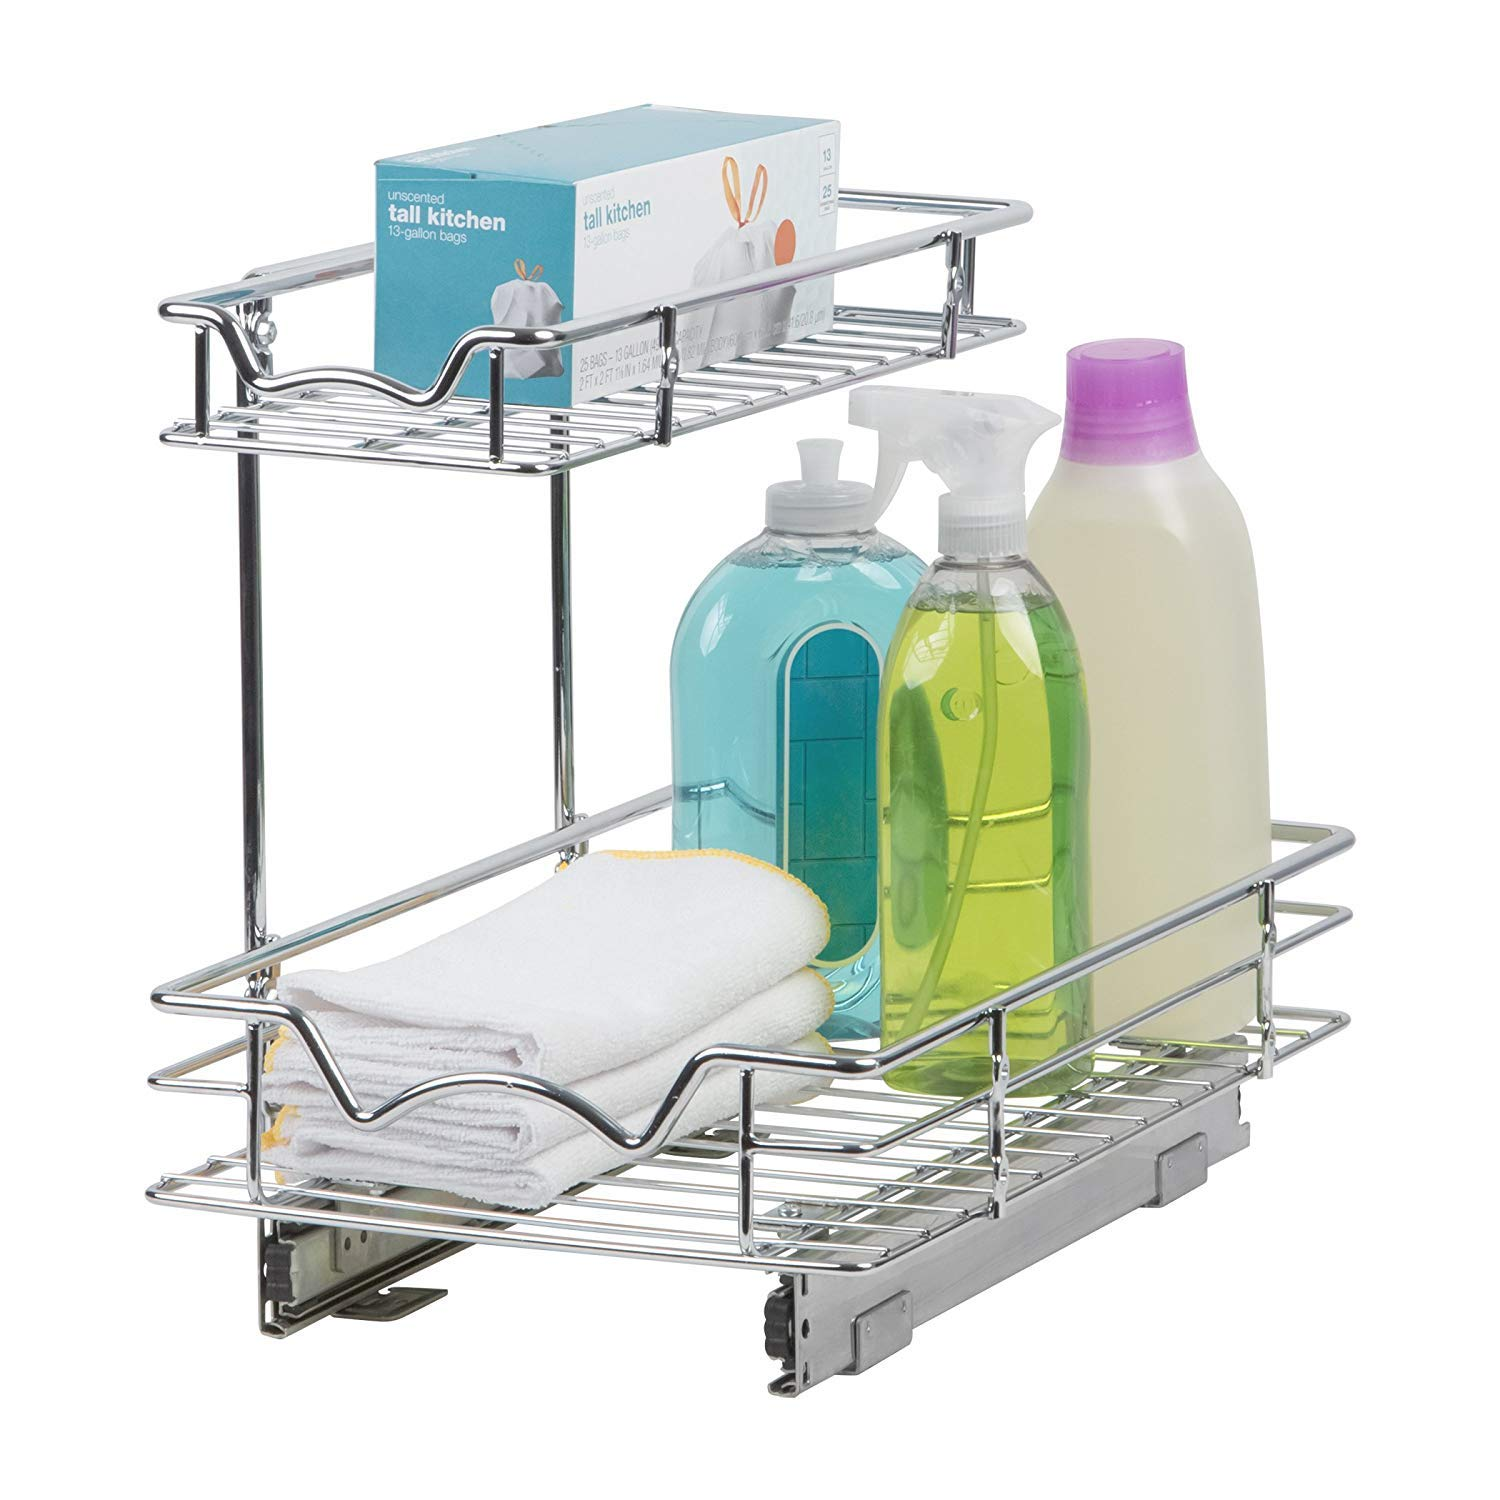 Slide Out Cabinet Organizer - 11''W x 18''D x 14-1/2''H, Requires At Least 12'' Cabinet Opening - Kitchen Cabinet Pull Out Two Tier Roll Out Sliding Shelves & Storage Organizer for Extra Storage by Richards Homewares